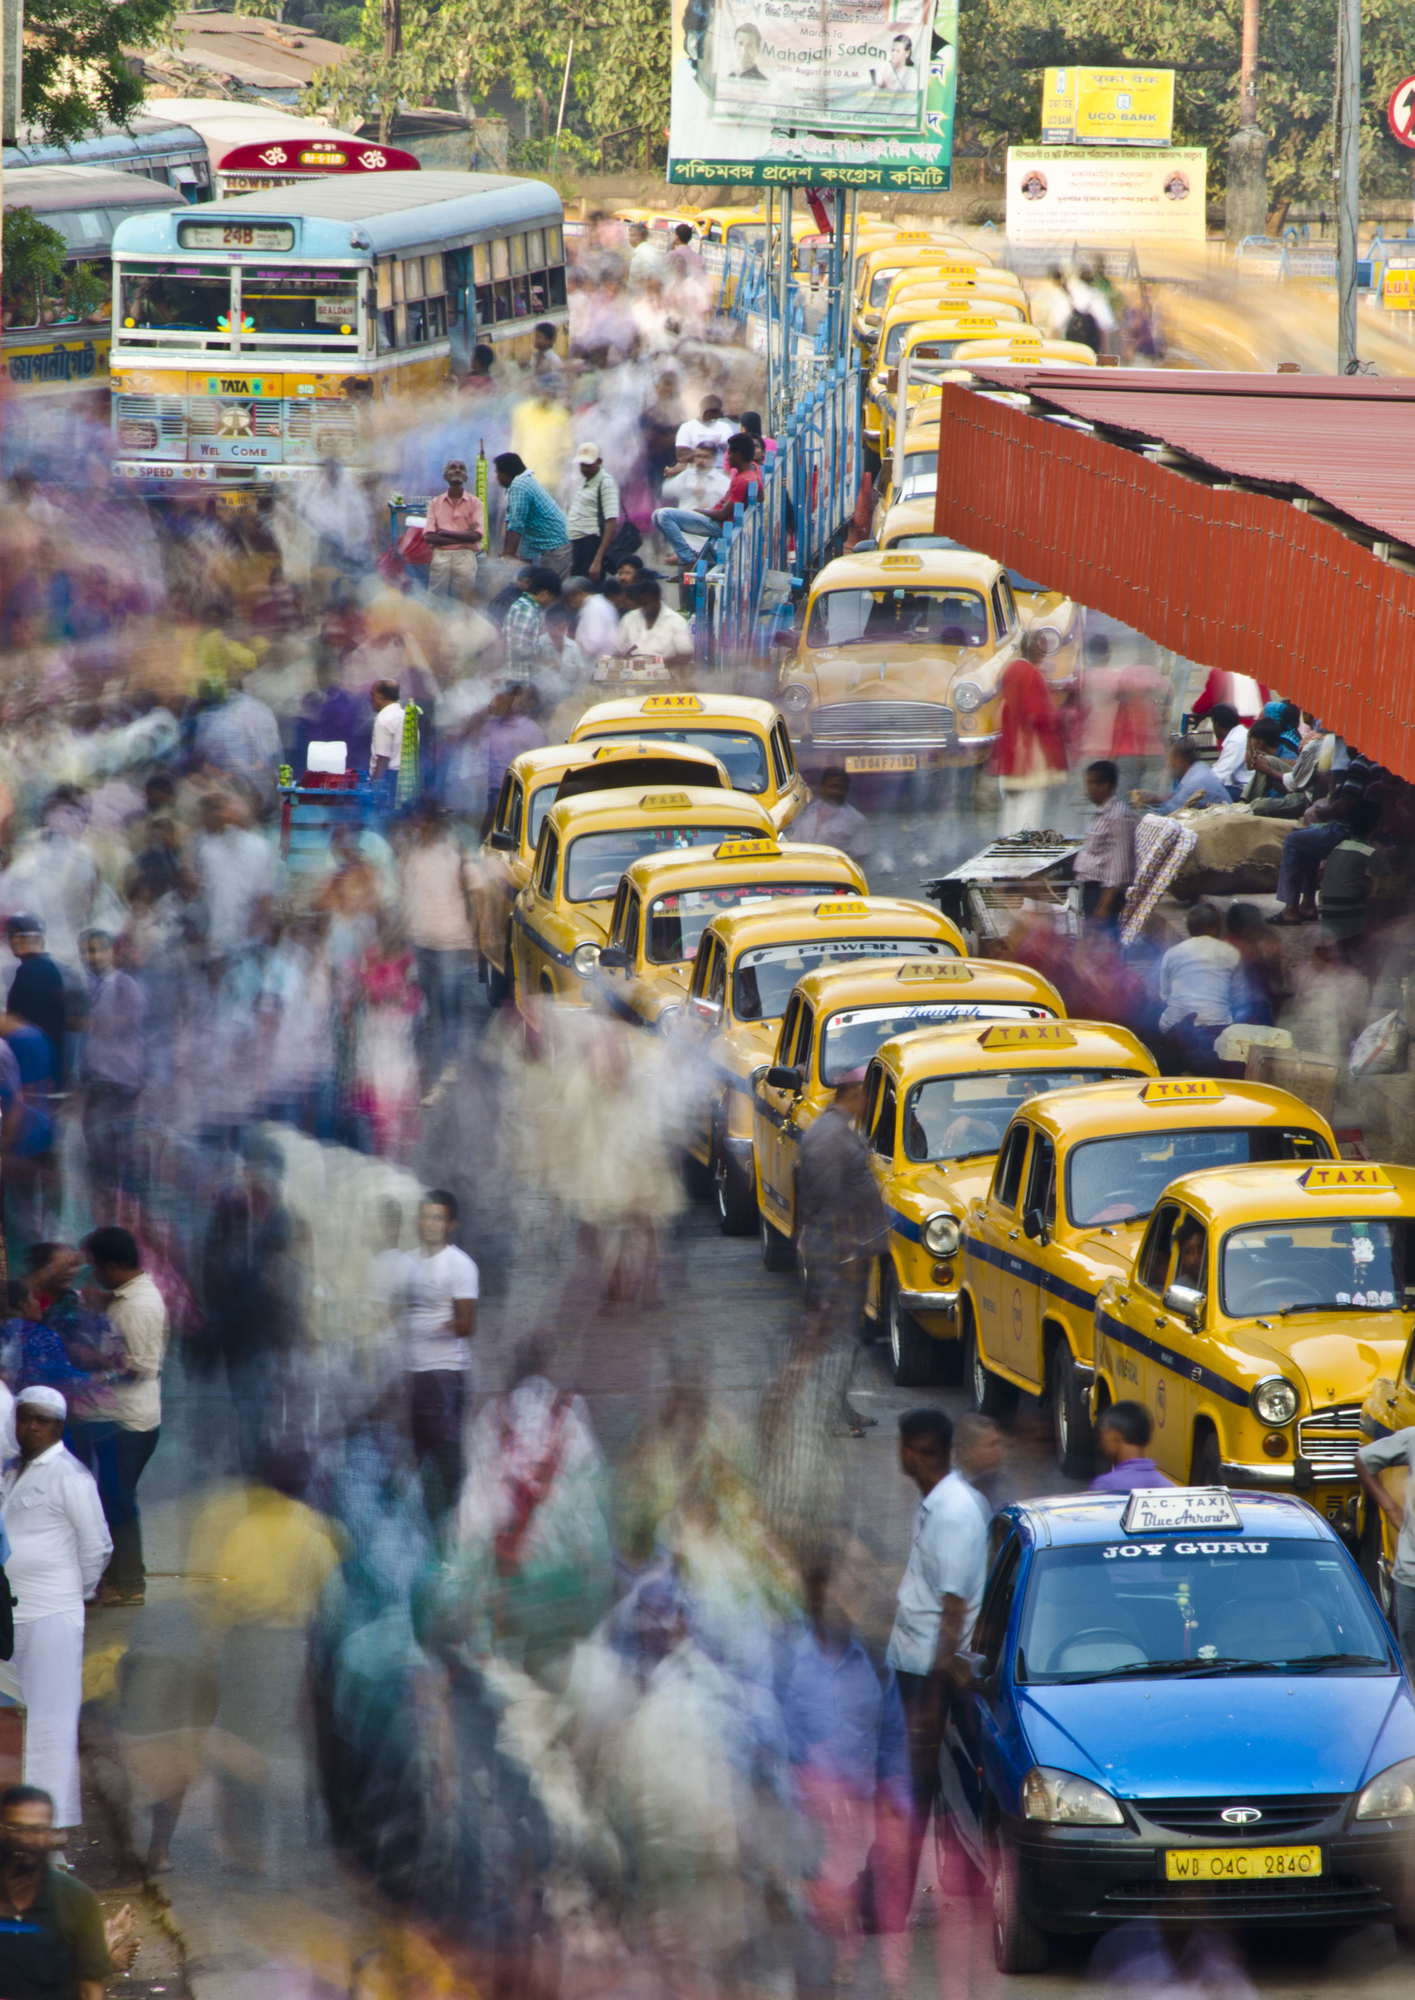 This picture is taken from the Balcony of the iconic Howrah Railway Station. The stationary taxis provide an interesting dynamics to the frame, amidst all the hustle and bustle.